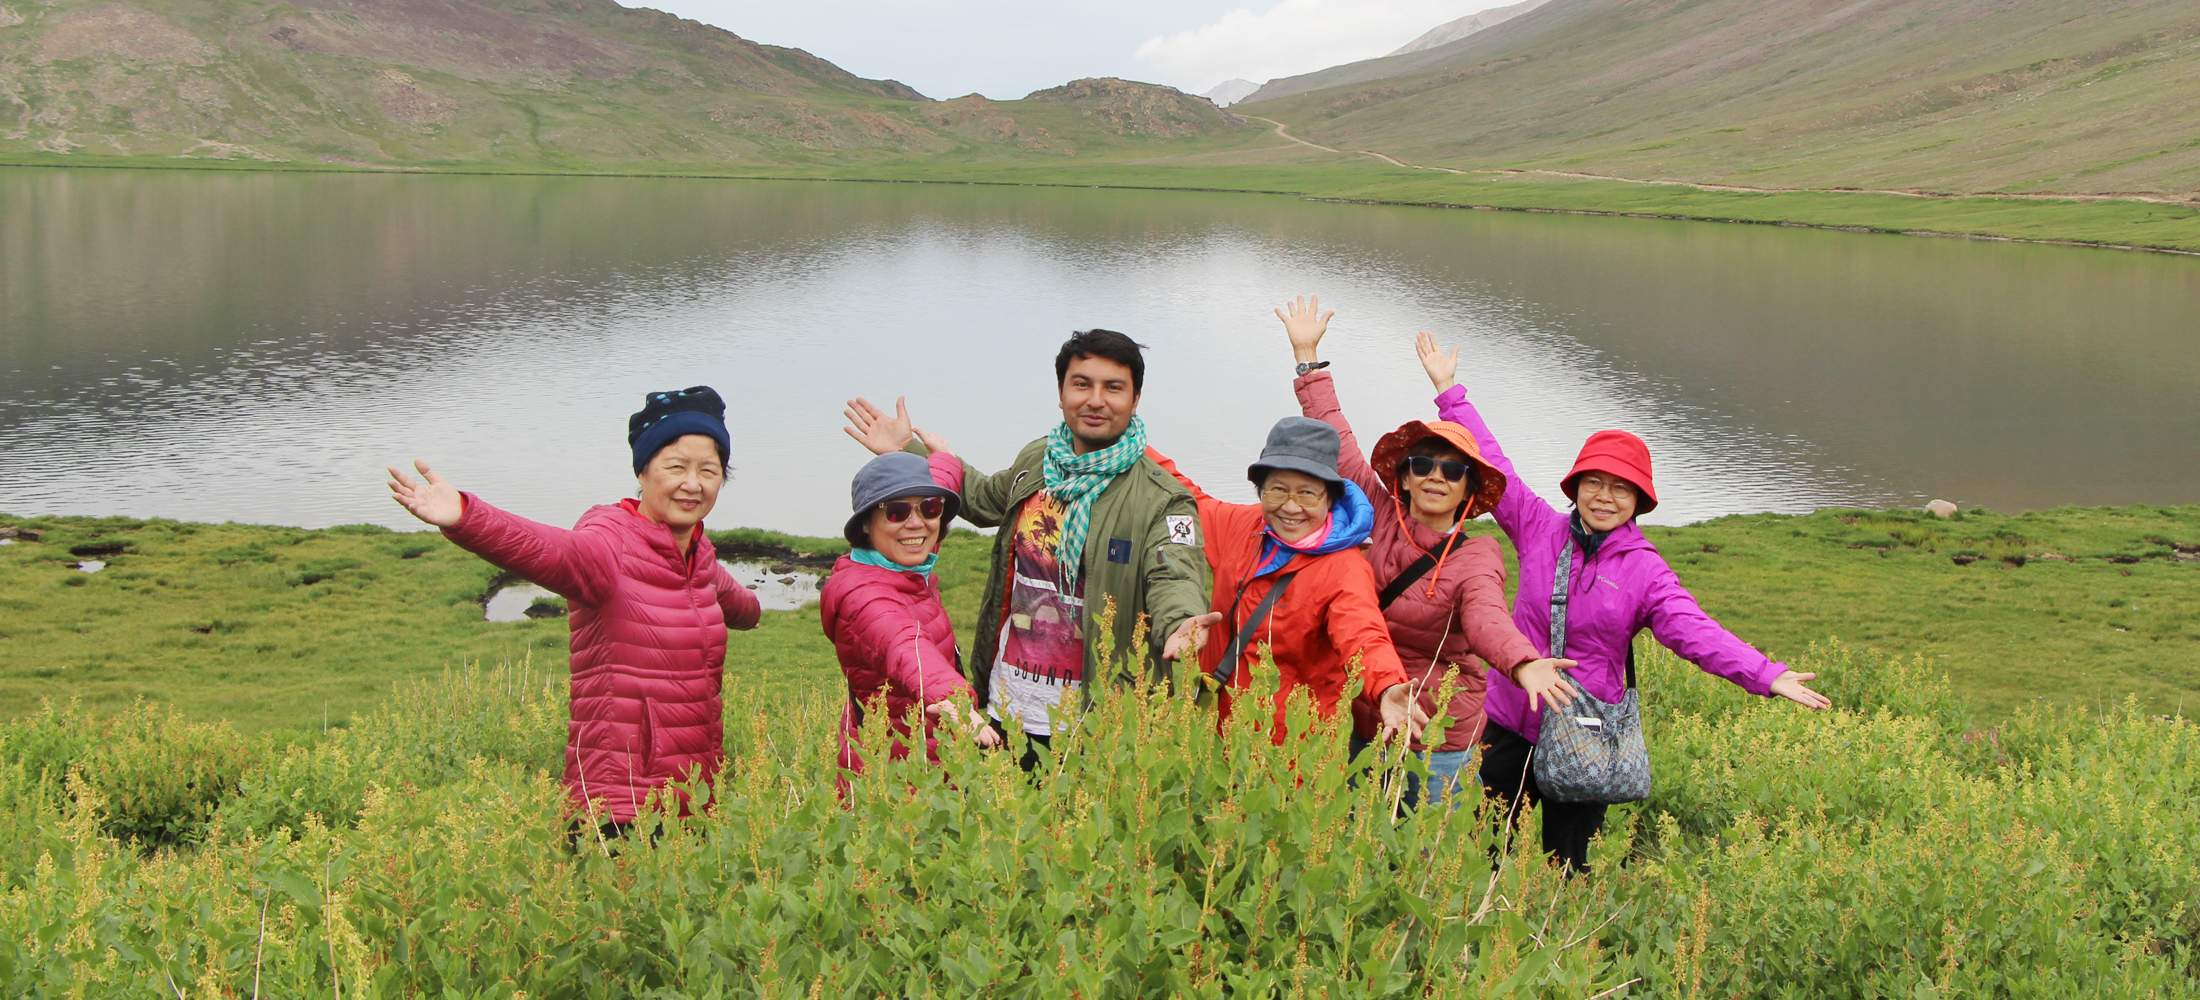 thailand tourist visit to deosai plains